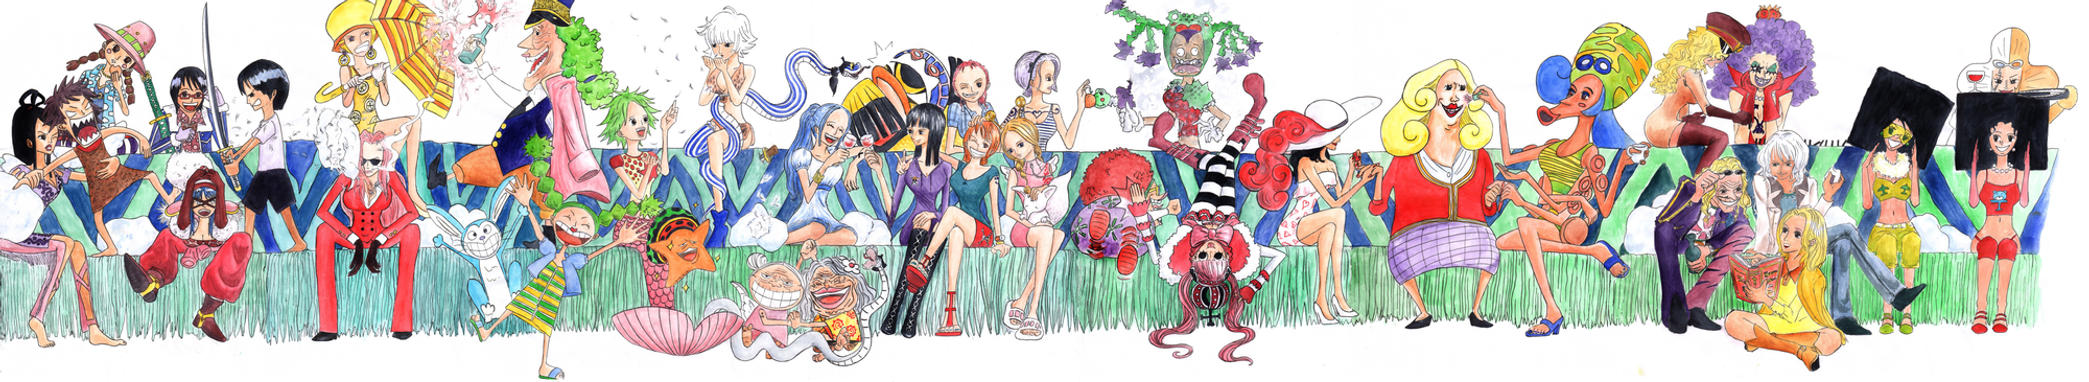 One Piece girls by orange90